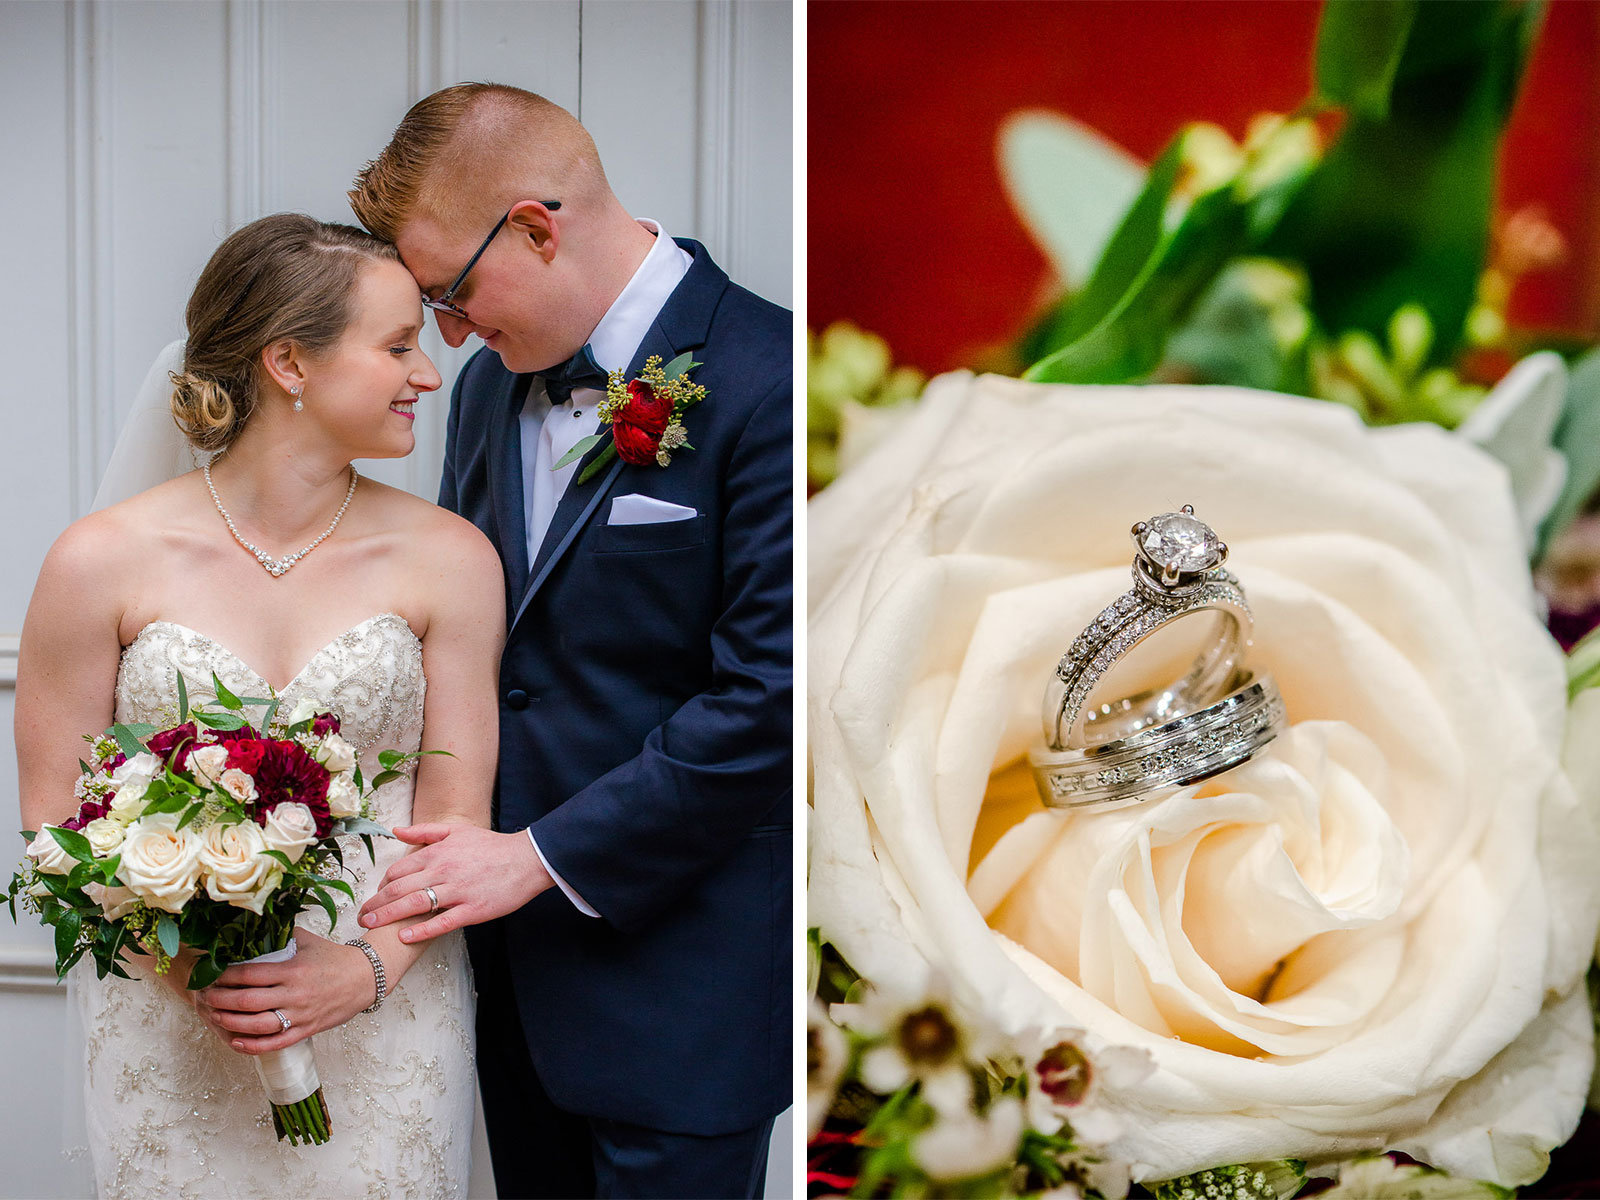 Eric_and_Christy_Photography_Blog_Wedding_Erica_Mike-62-63